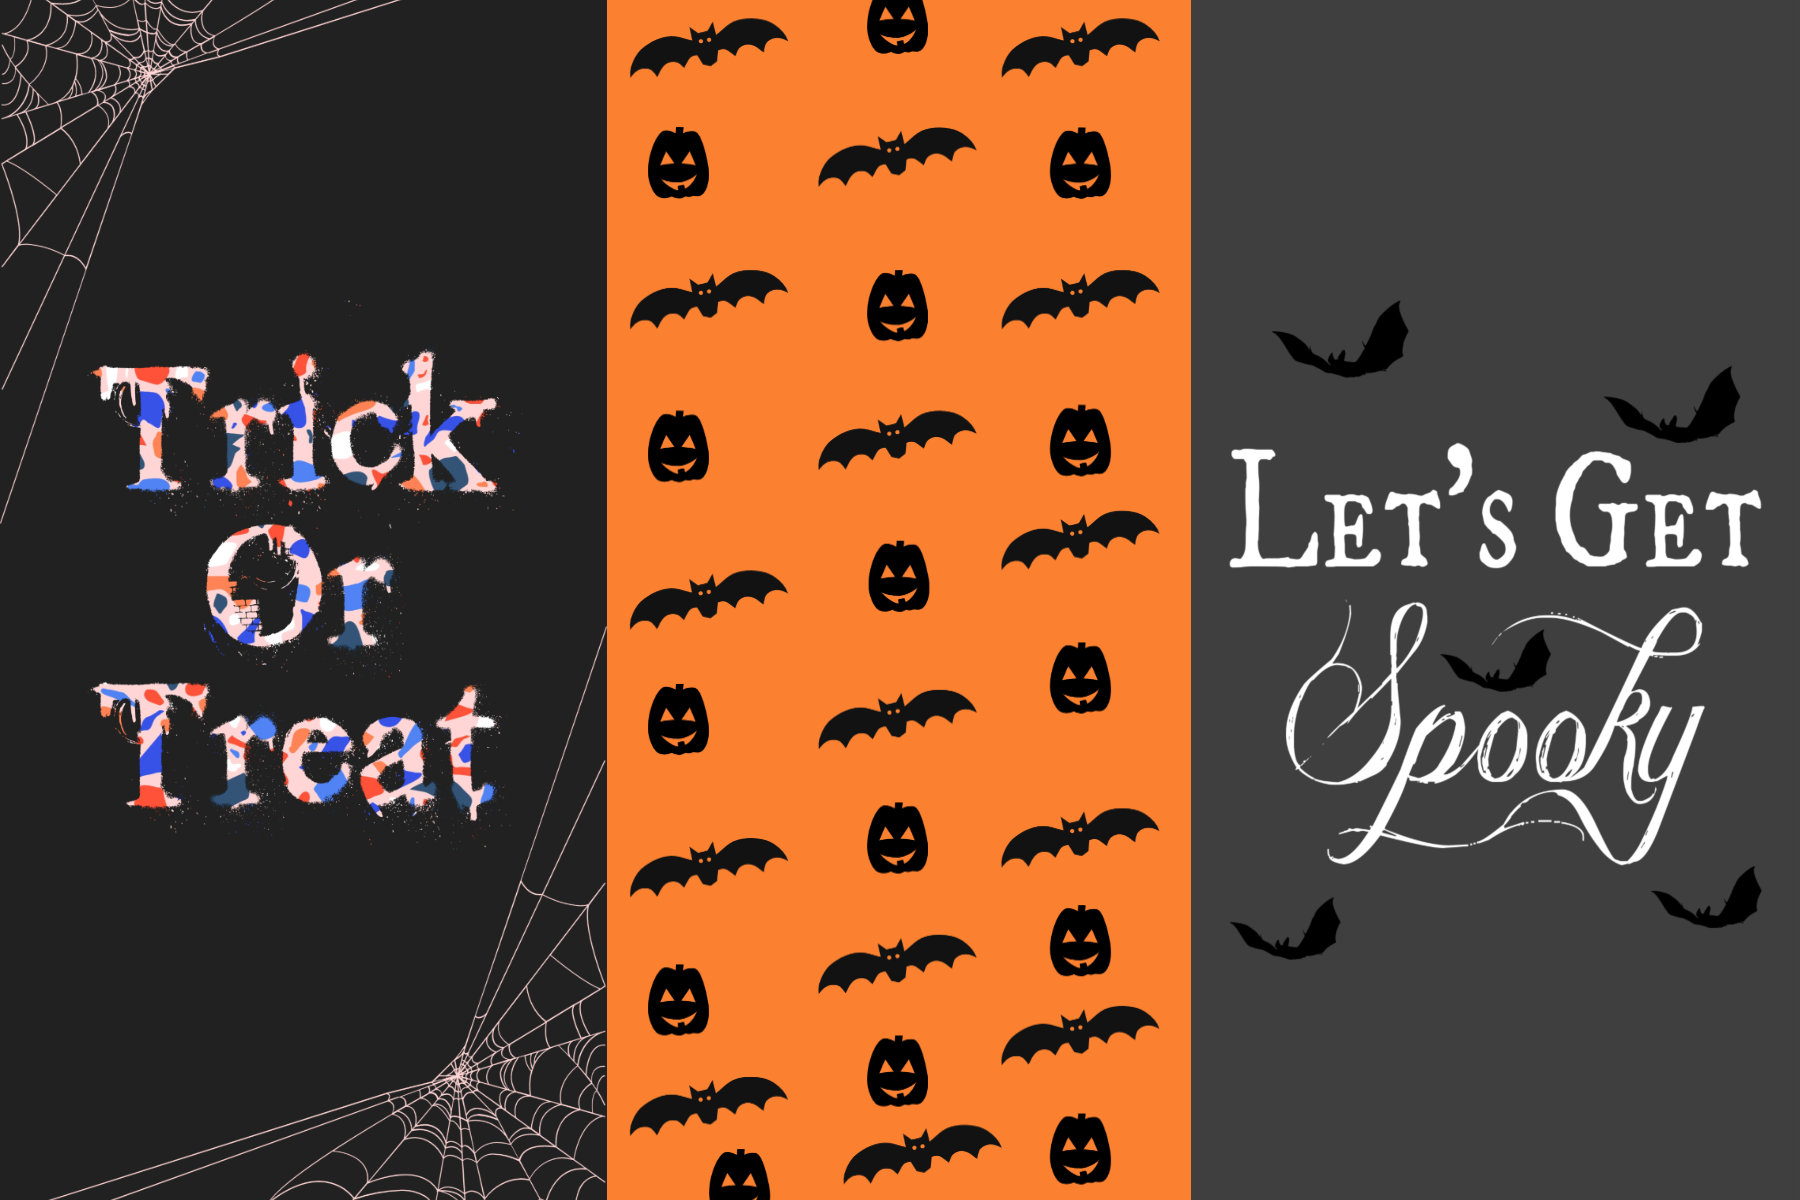 10 Spooky Halloween Wallpapers For Iphone The Clever Side